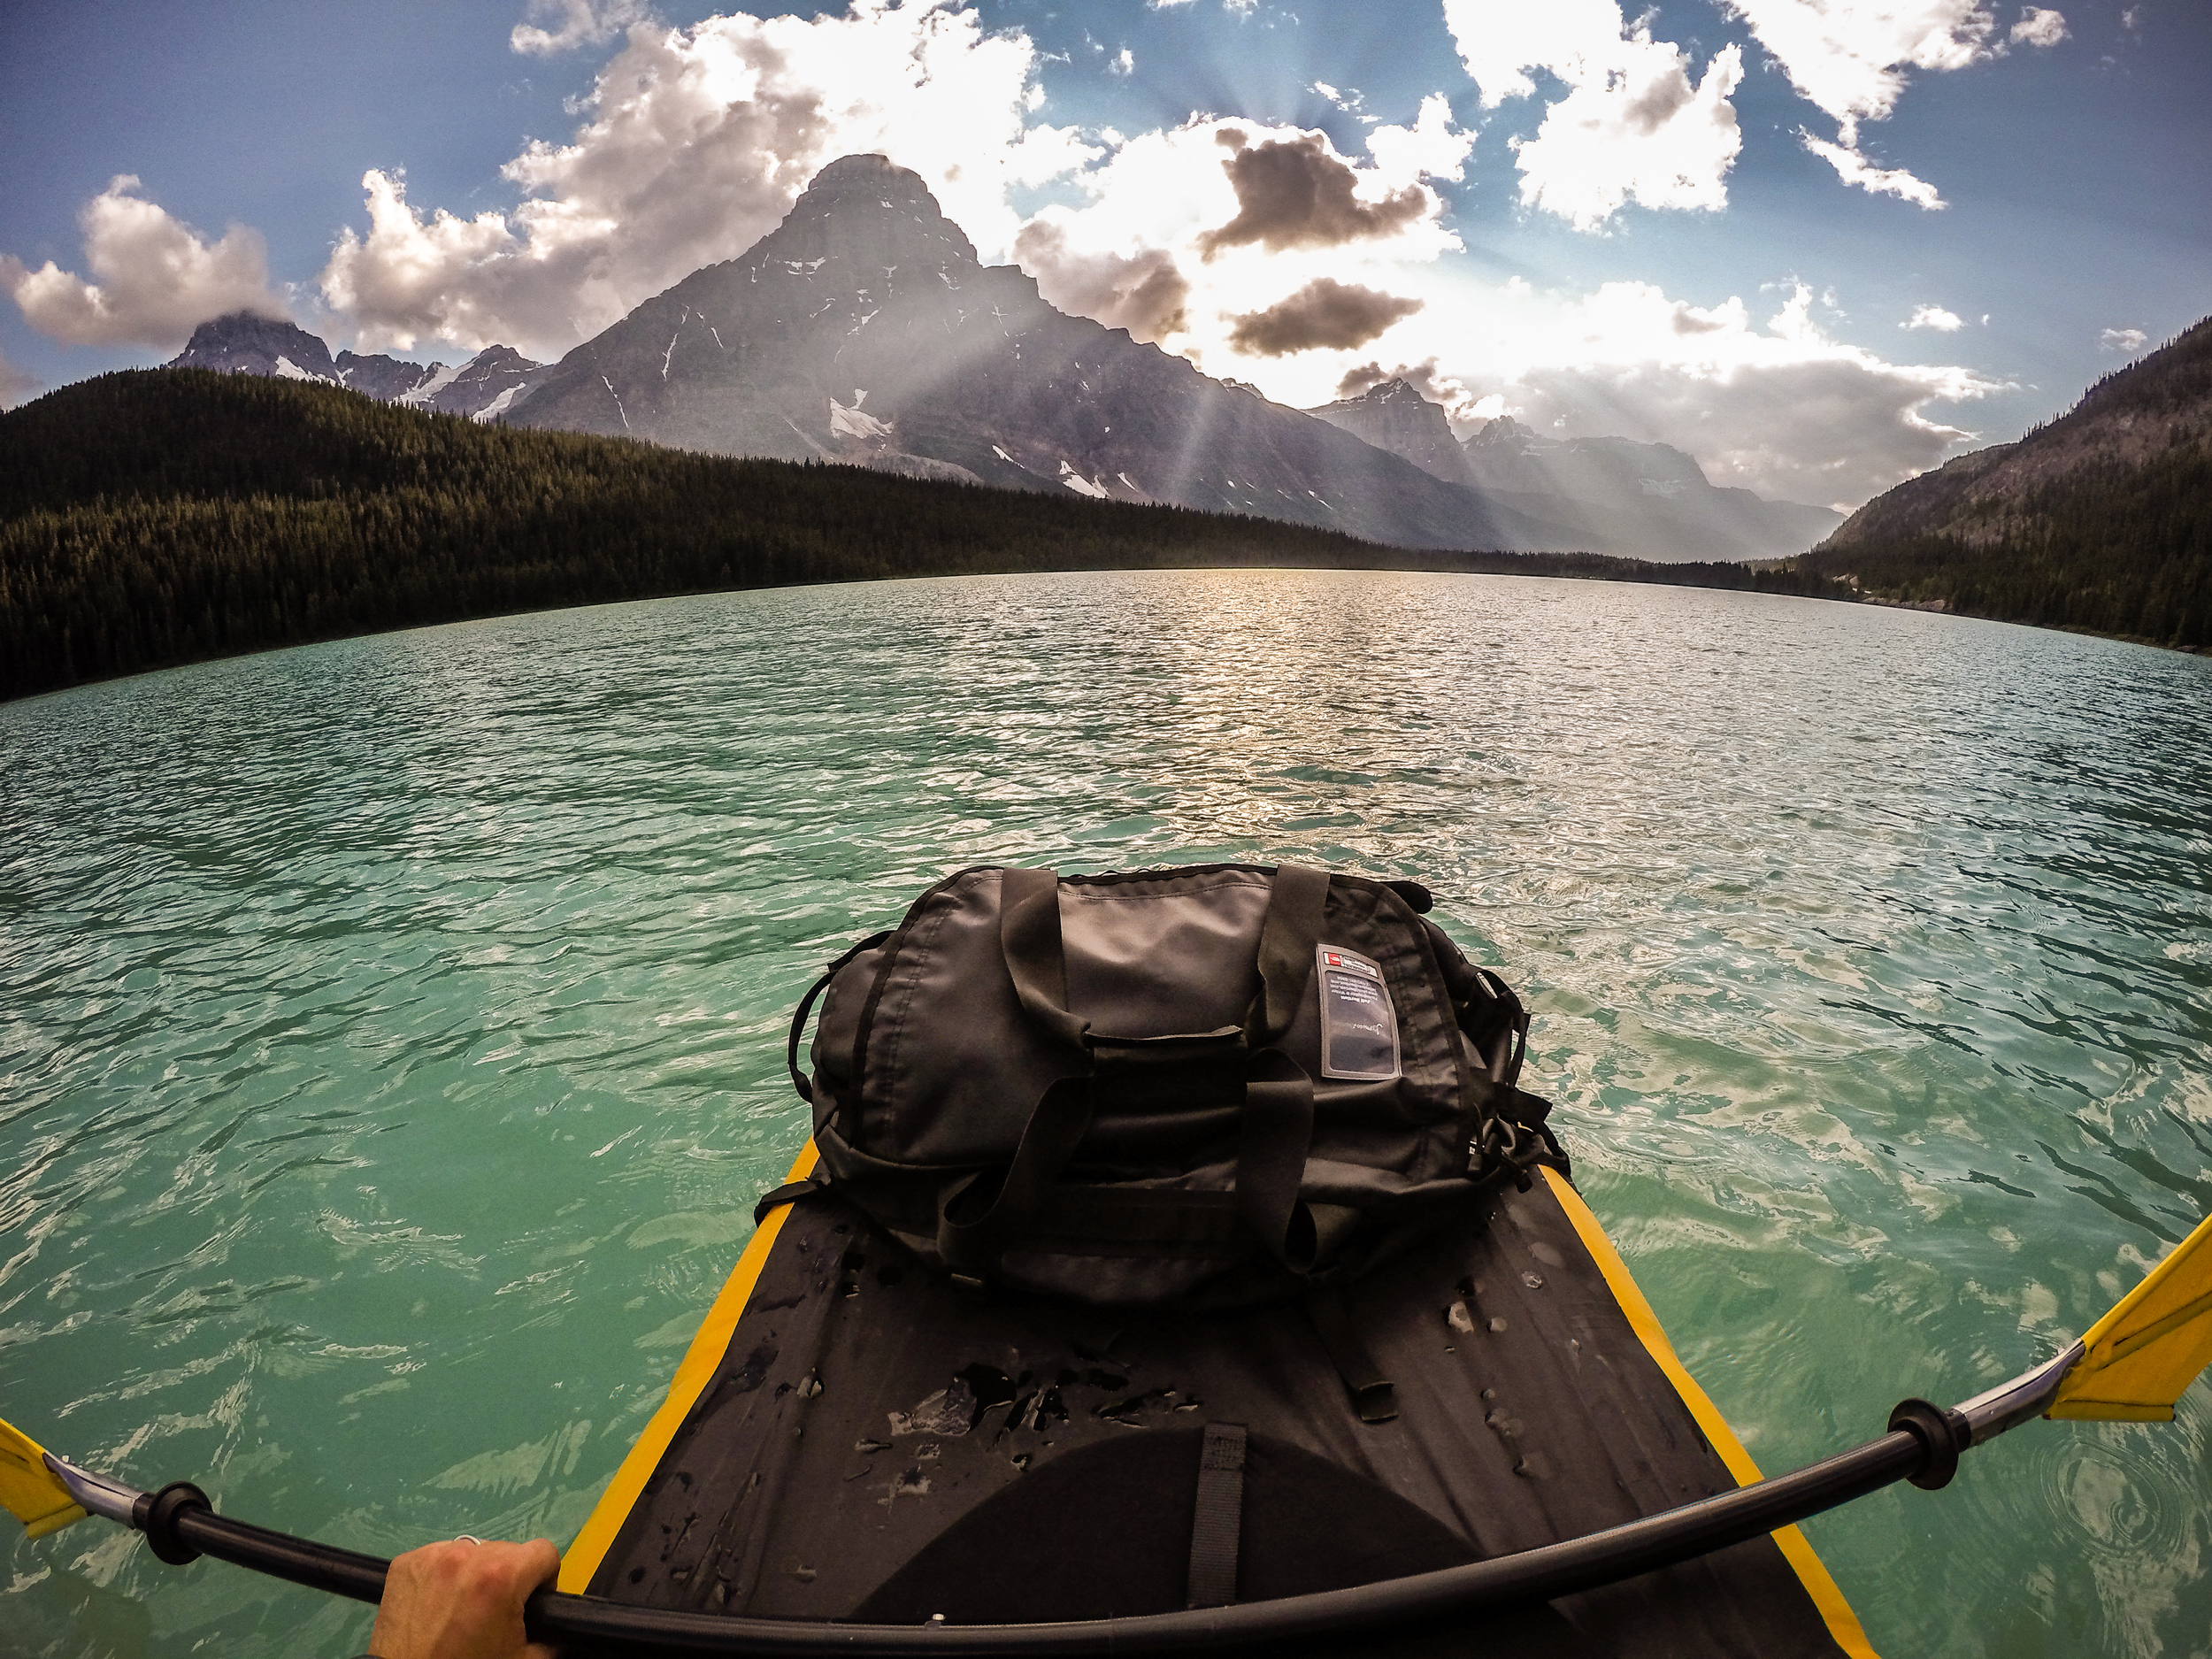 The sun breaks through the clouds onto @PhotoJBartlett packrafting on Waterfowl Lake.